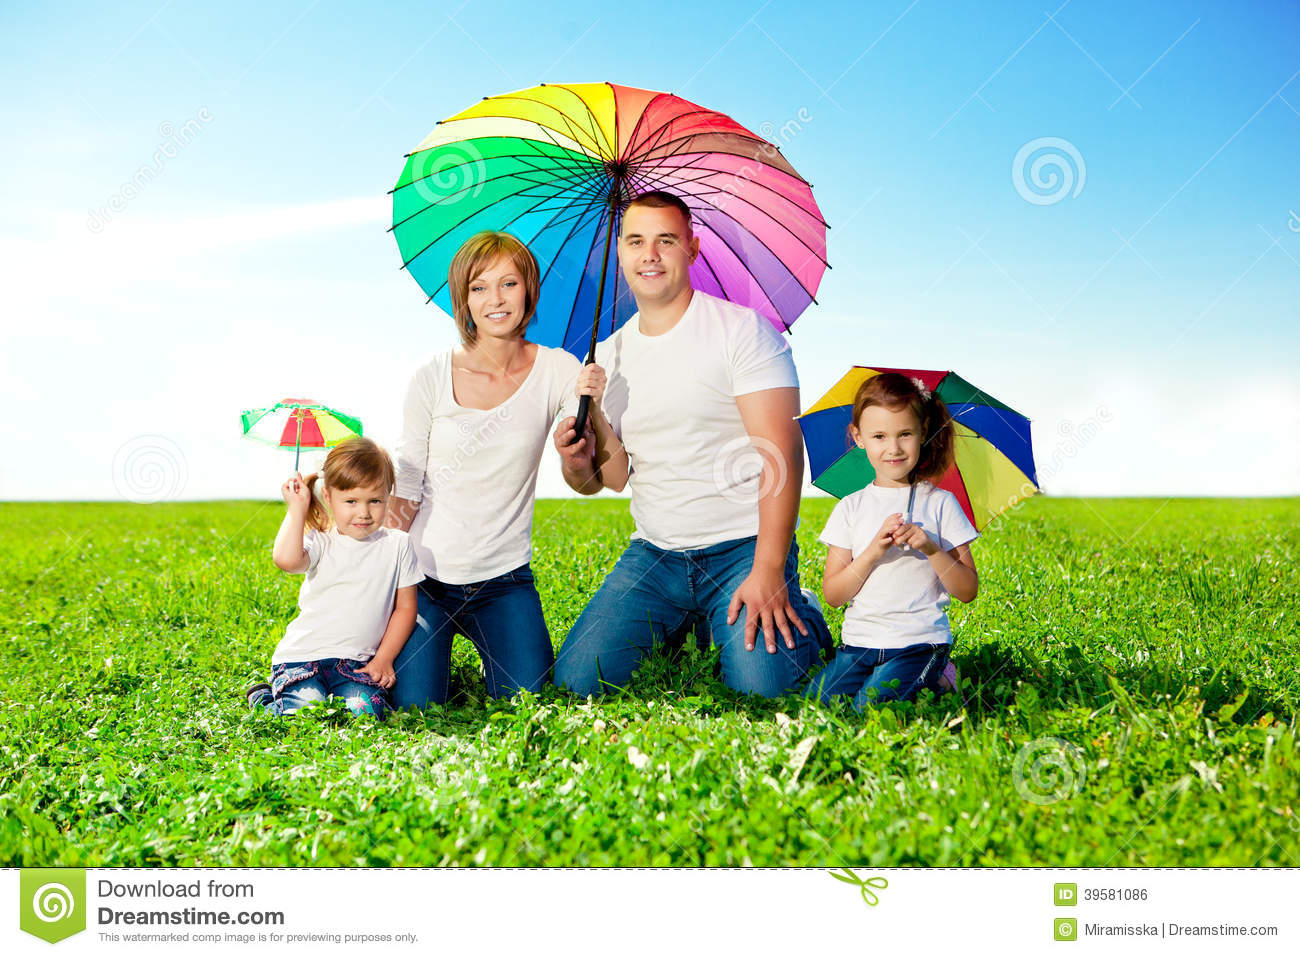 Gardening Group: Happy Family Together In Outdoor Park At Sunny Day. Mom